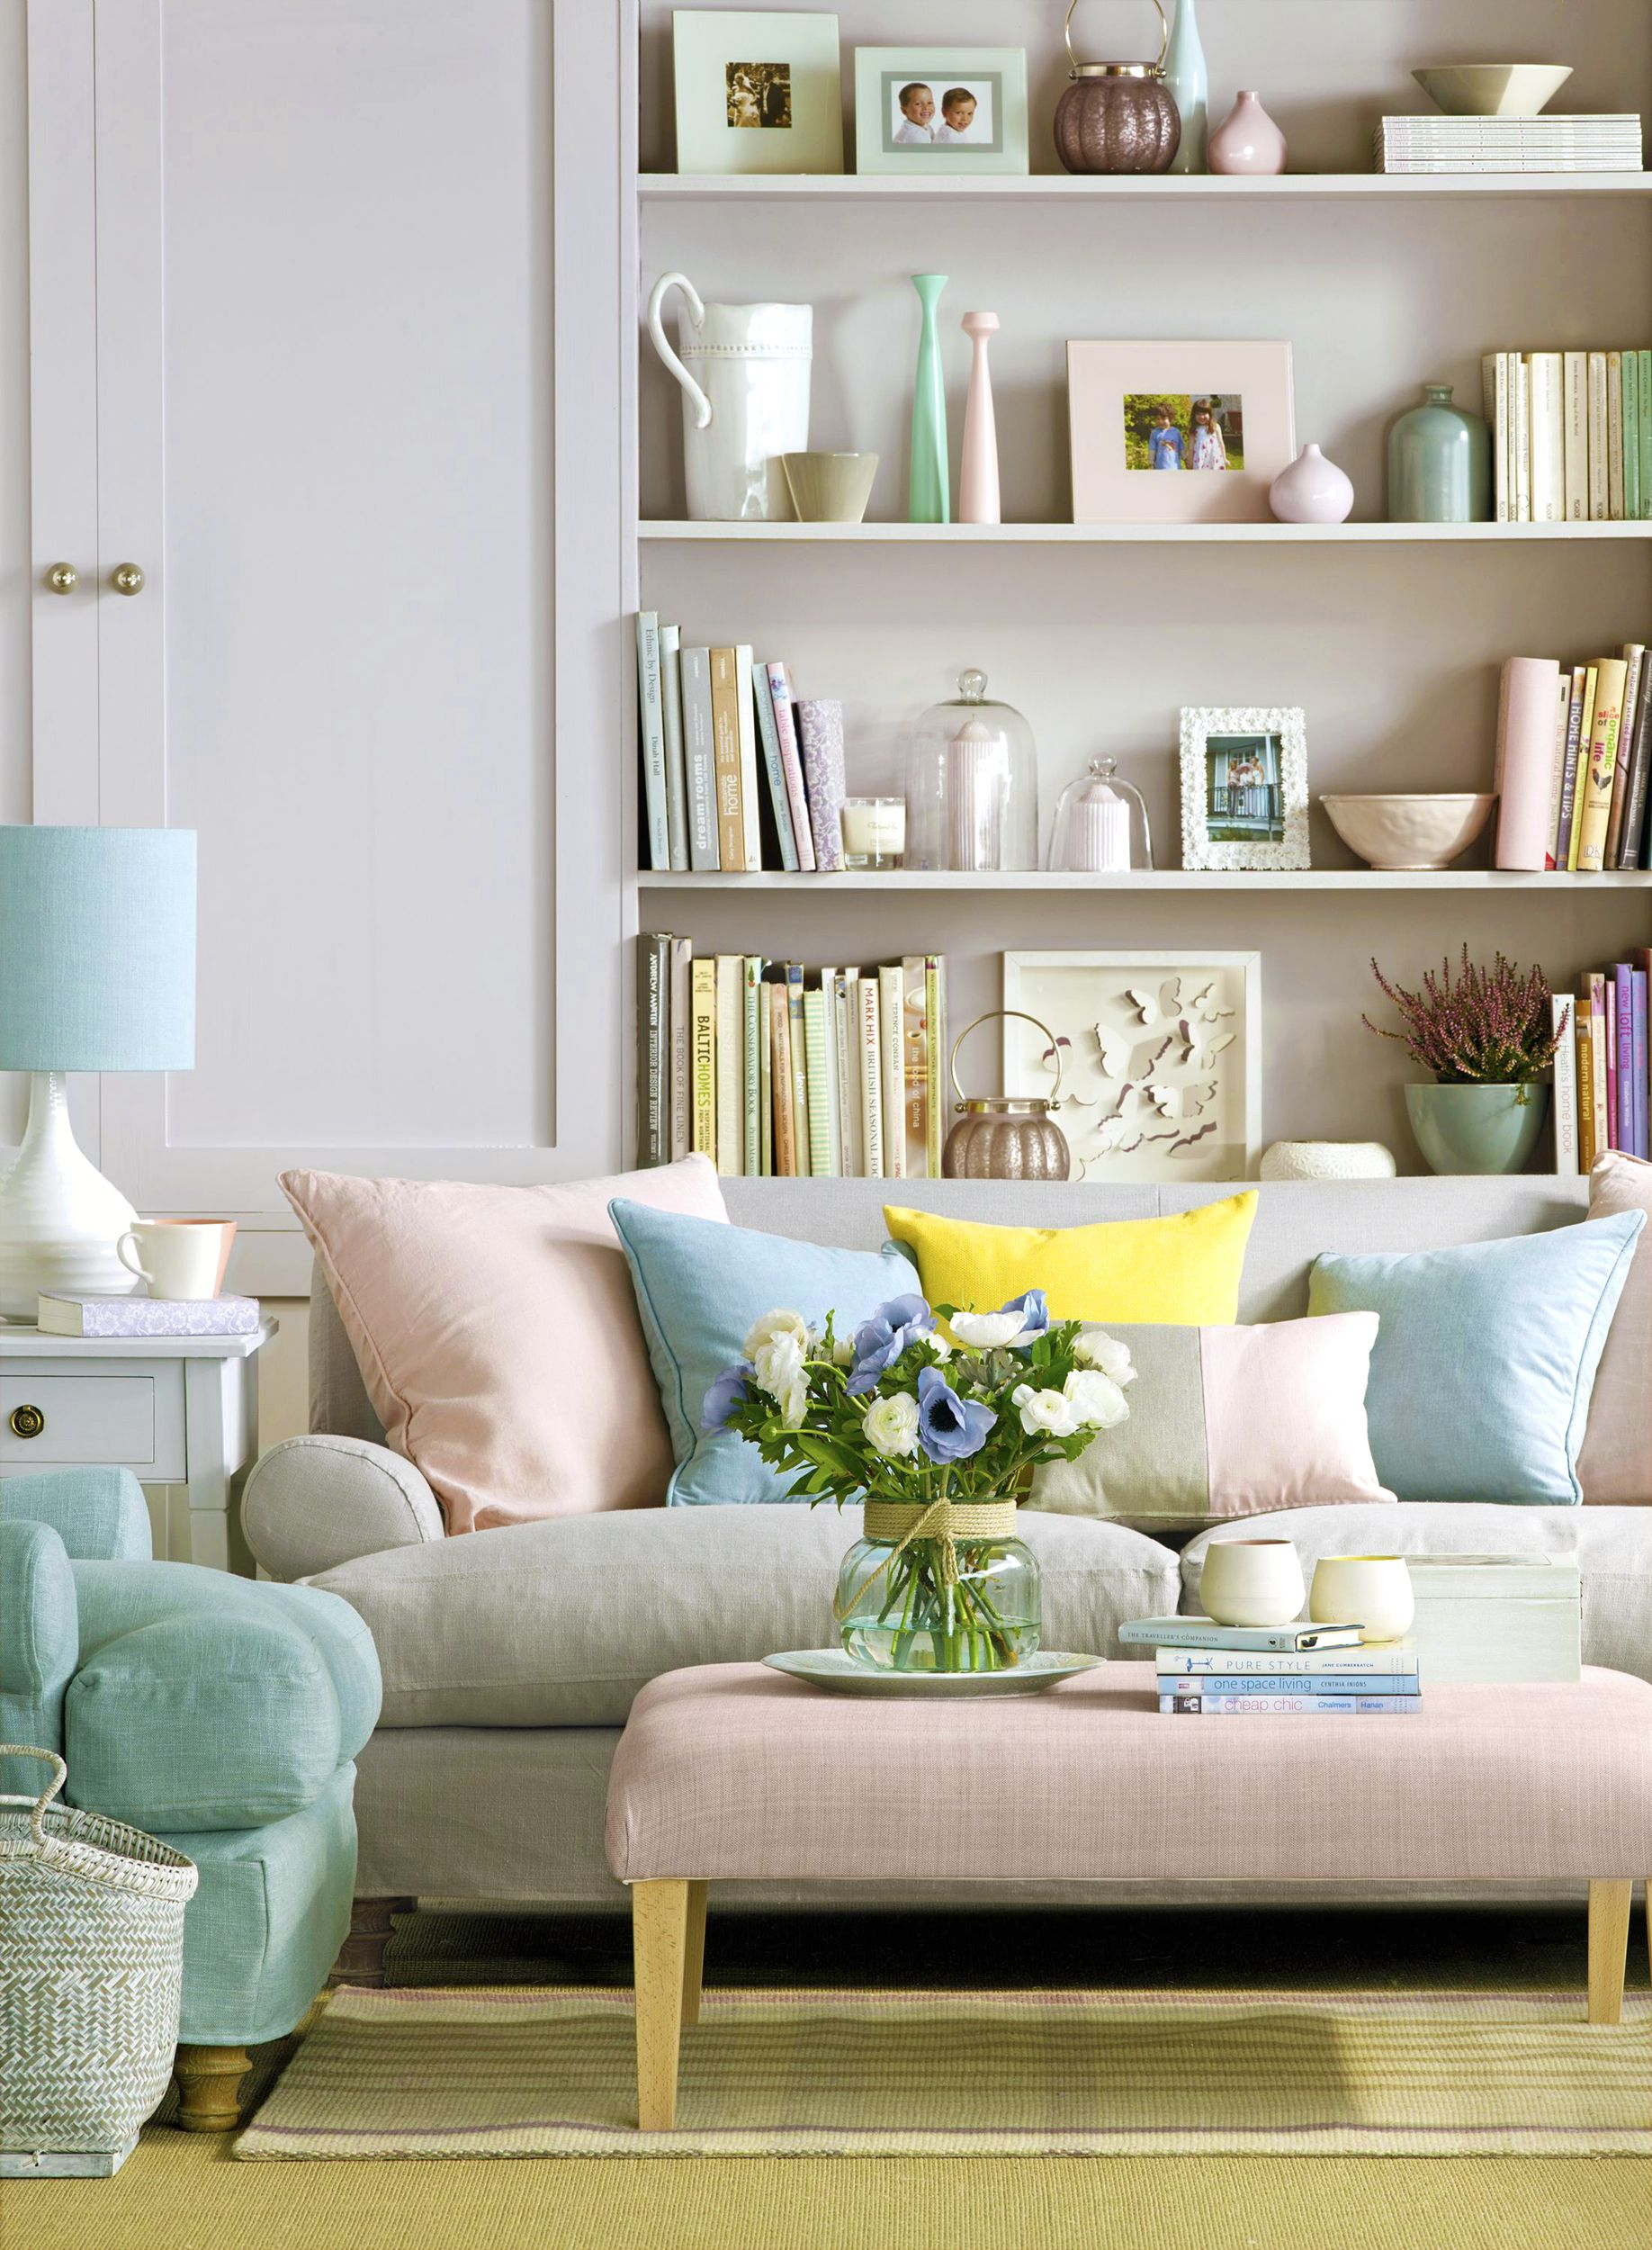 26 Spring Decor Ideas To Freshen Up Your Home Best Spring Decorating Ideas For The Home